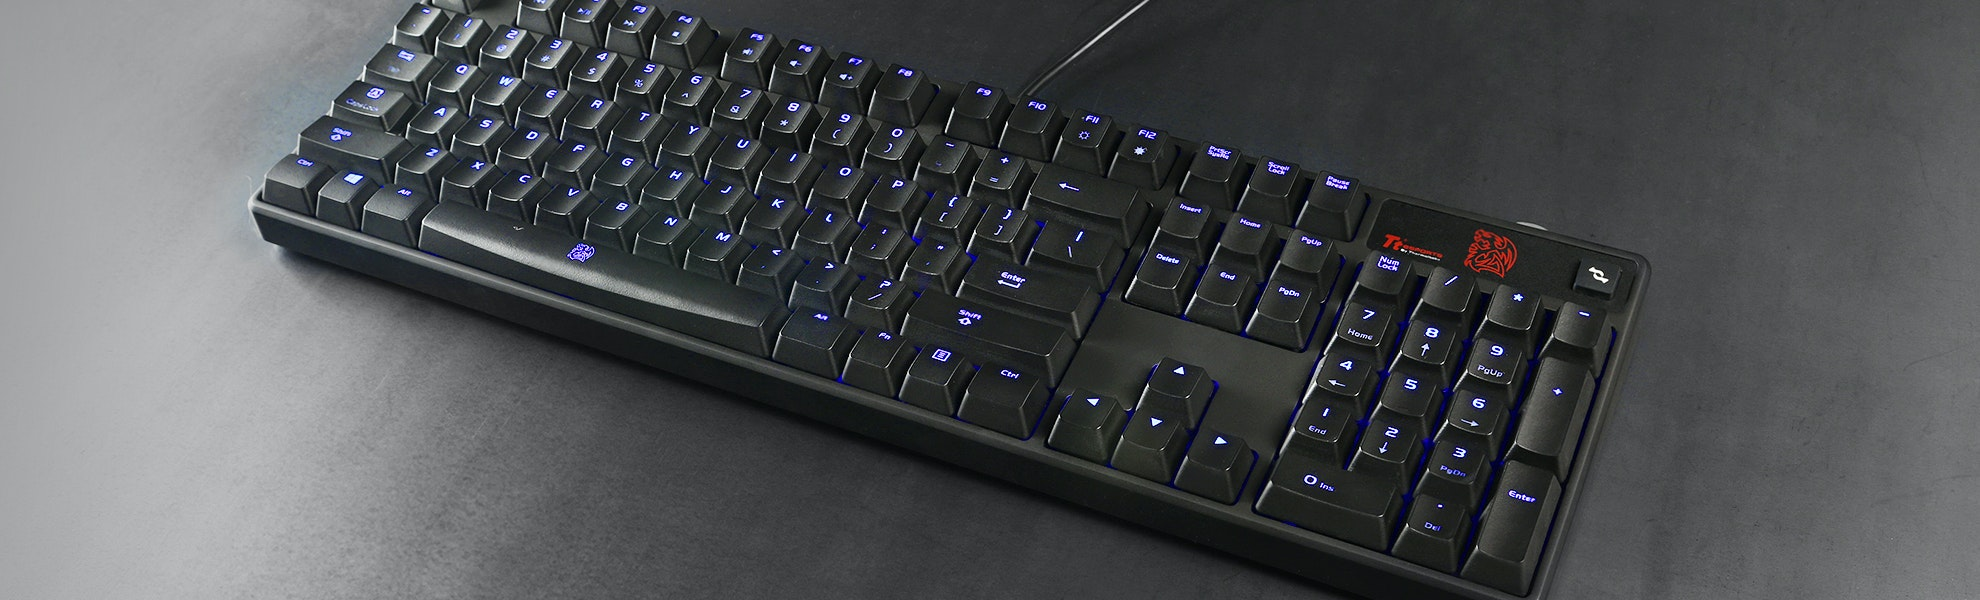 Thermaltake Poseidon Cherry MX Blue Keyboard